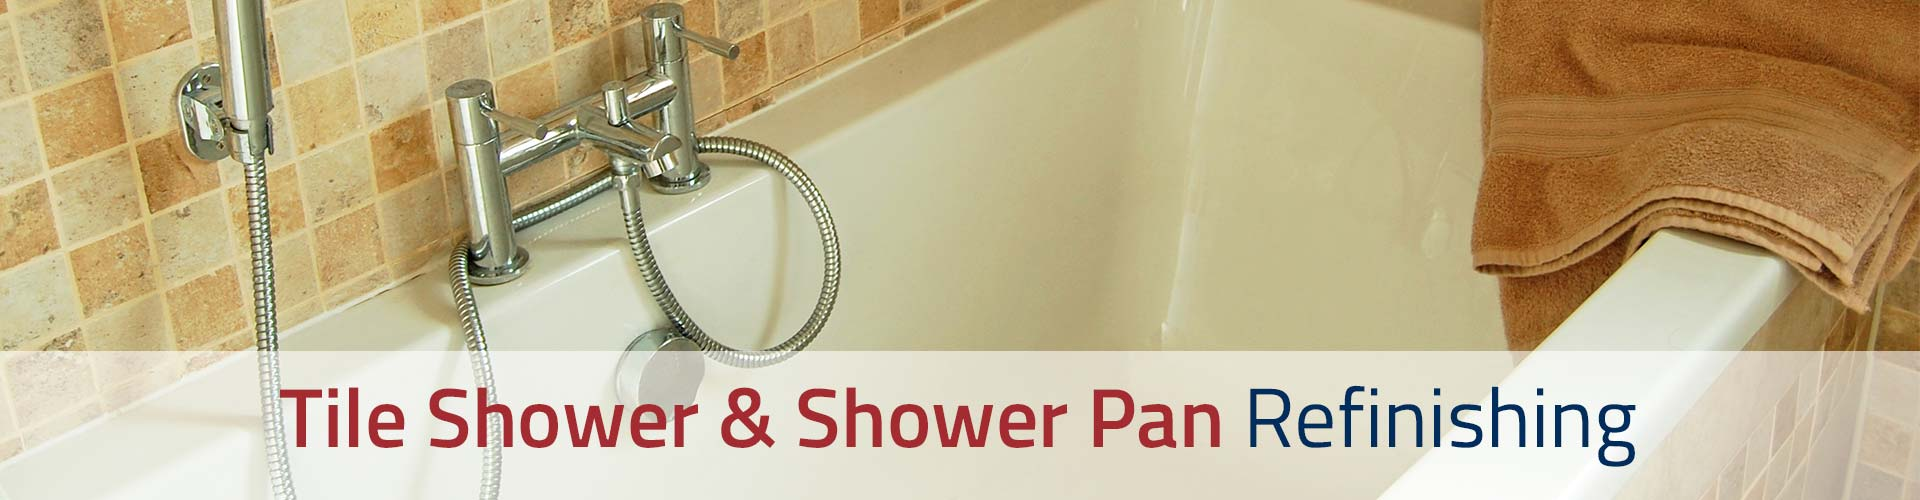 Tile Shower & Shower Pan Refinishing